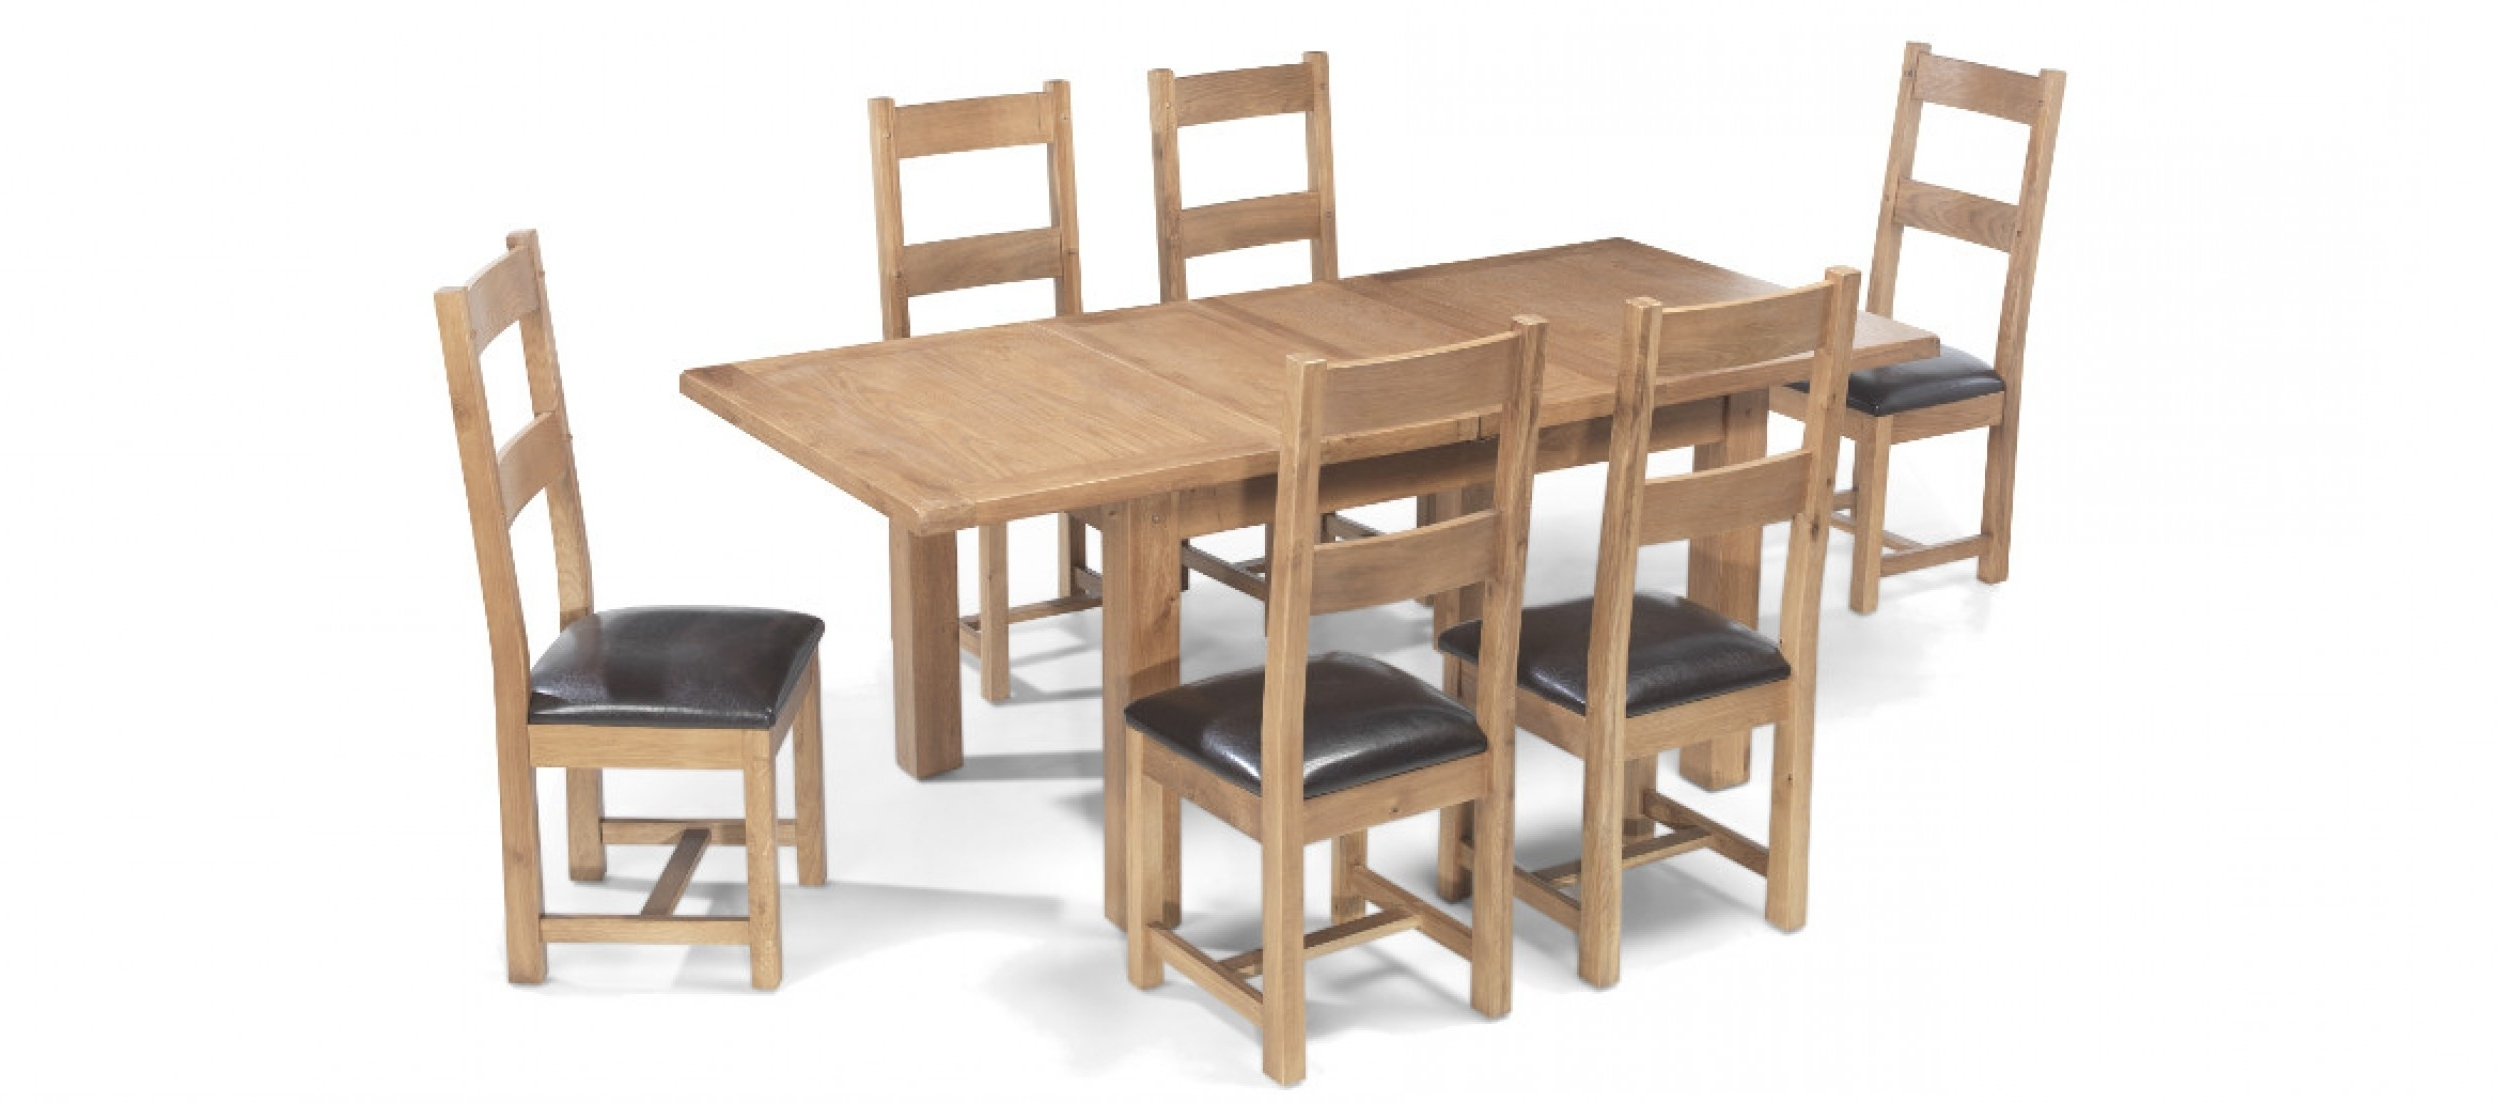 Most Popular Extendable Dining Tables And 6 Chairs In Rustic Oak 132 198 Cm Extending Dining Table And 6 Chairs (View 12 of 25)